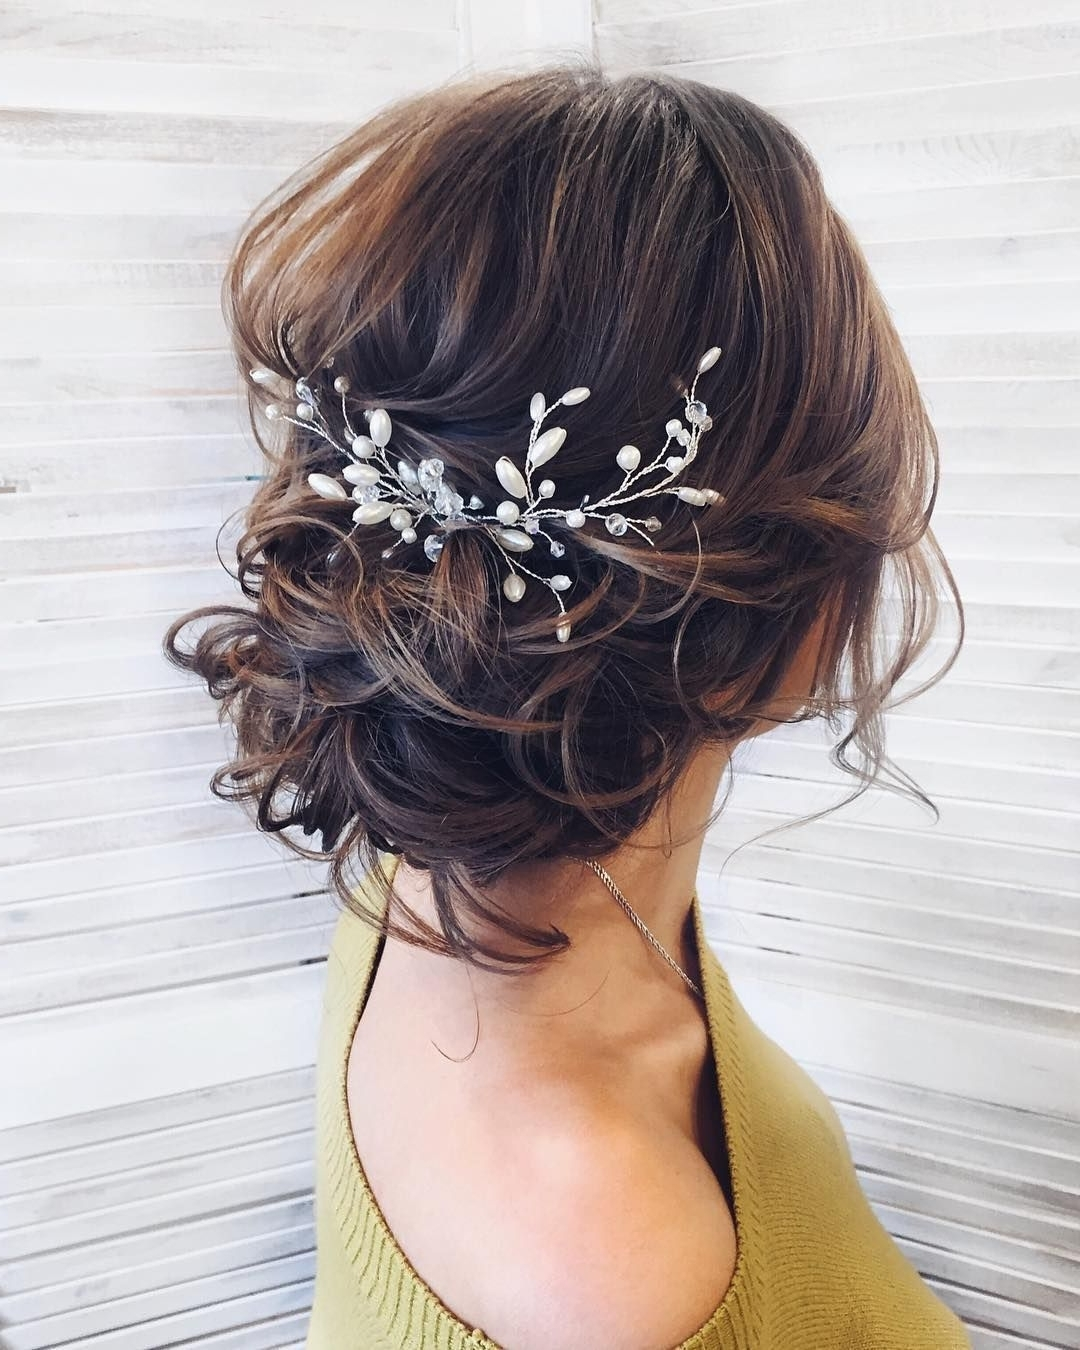 100 Gorgeous Wedding Hair From Ceremony To Reception | Messy Updo Within Messy Updo Hairstyles For Wedding (View 4 of 15)